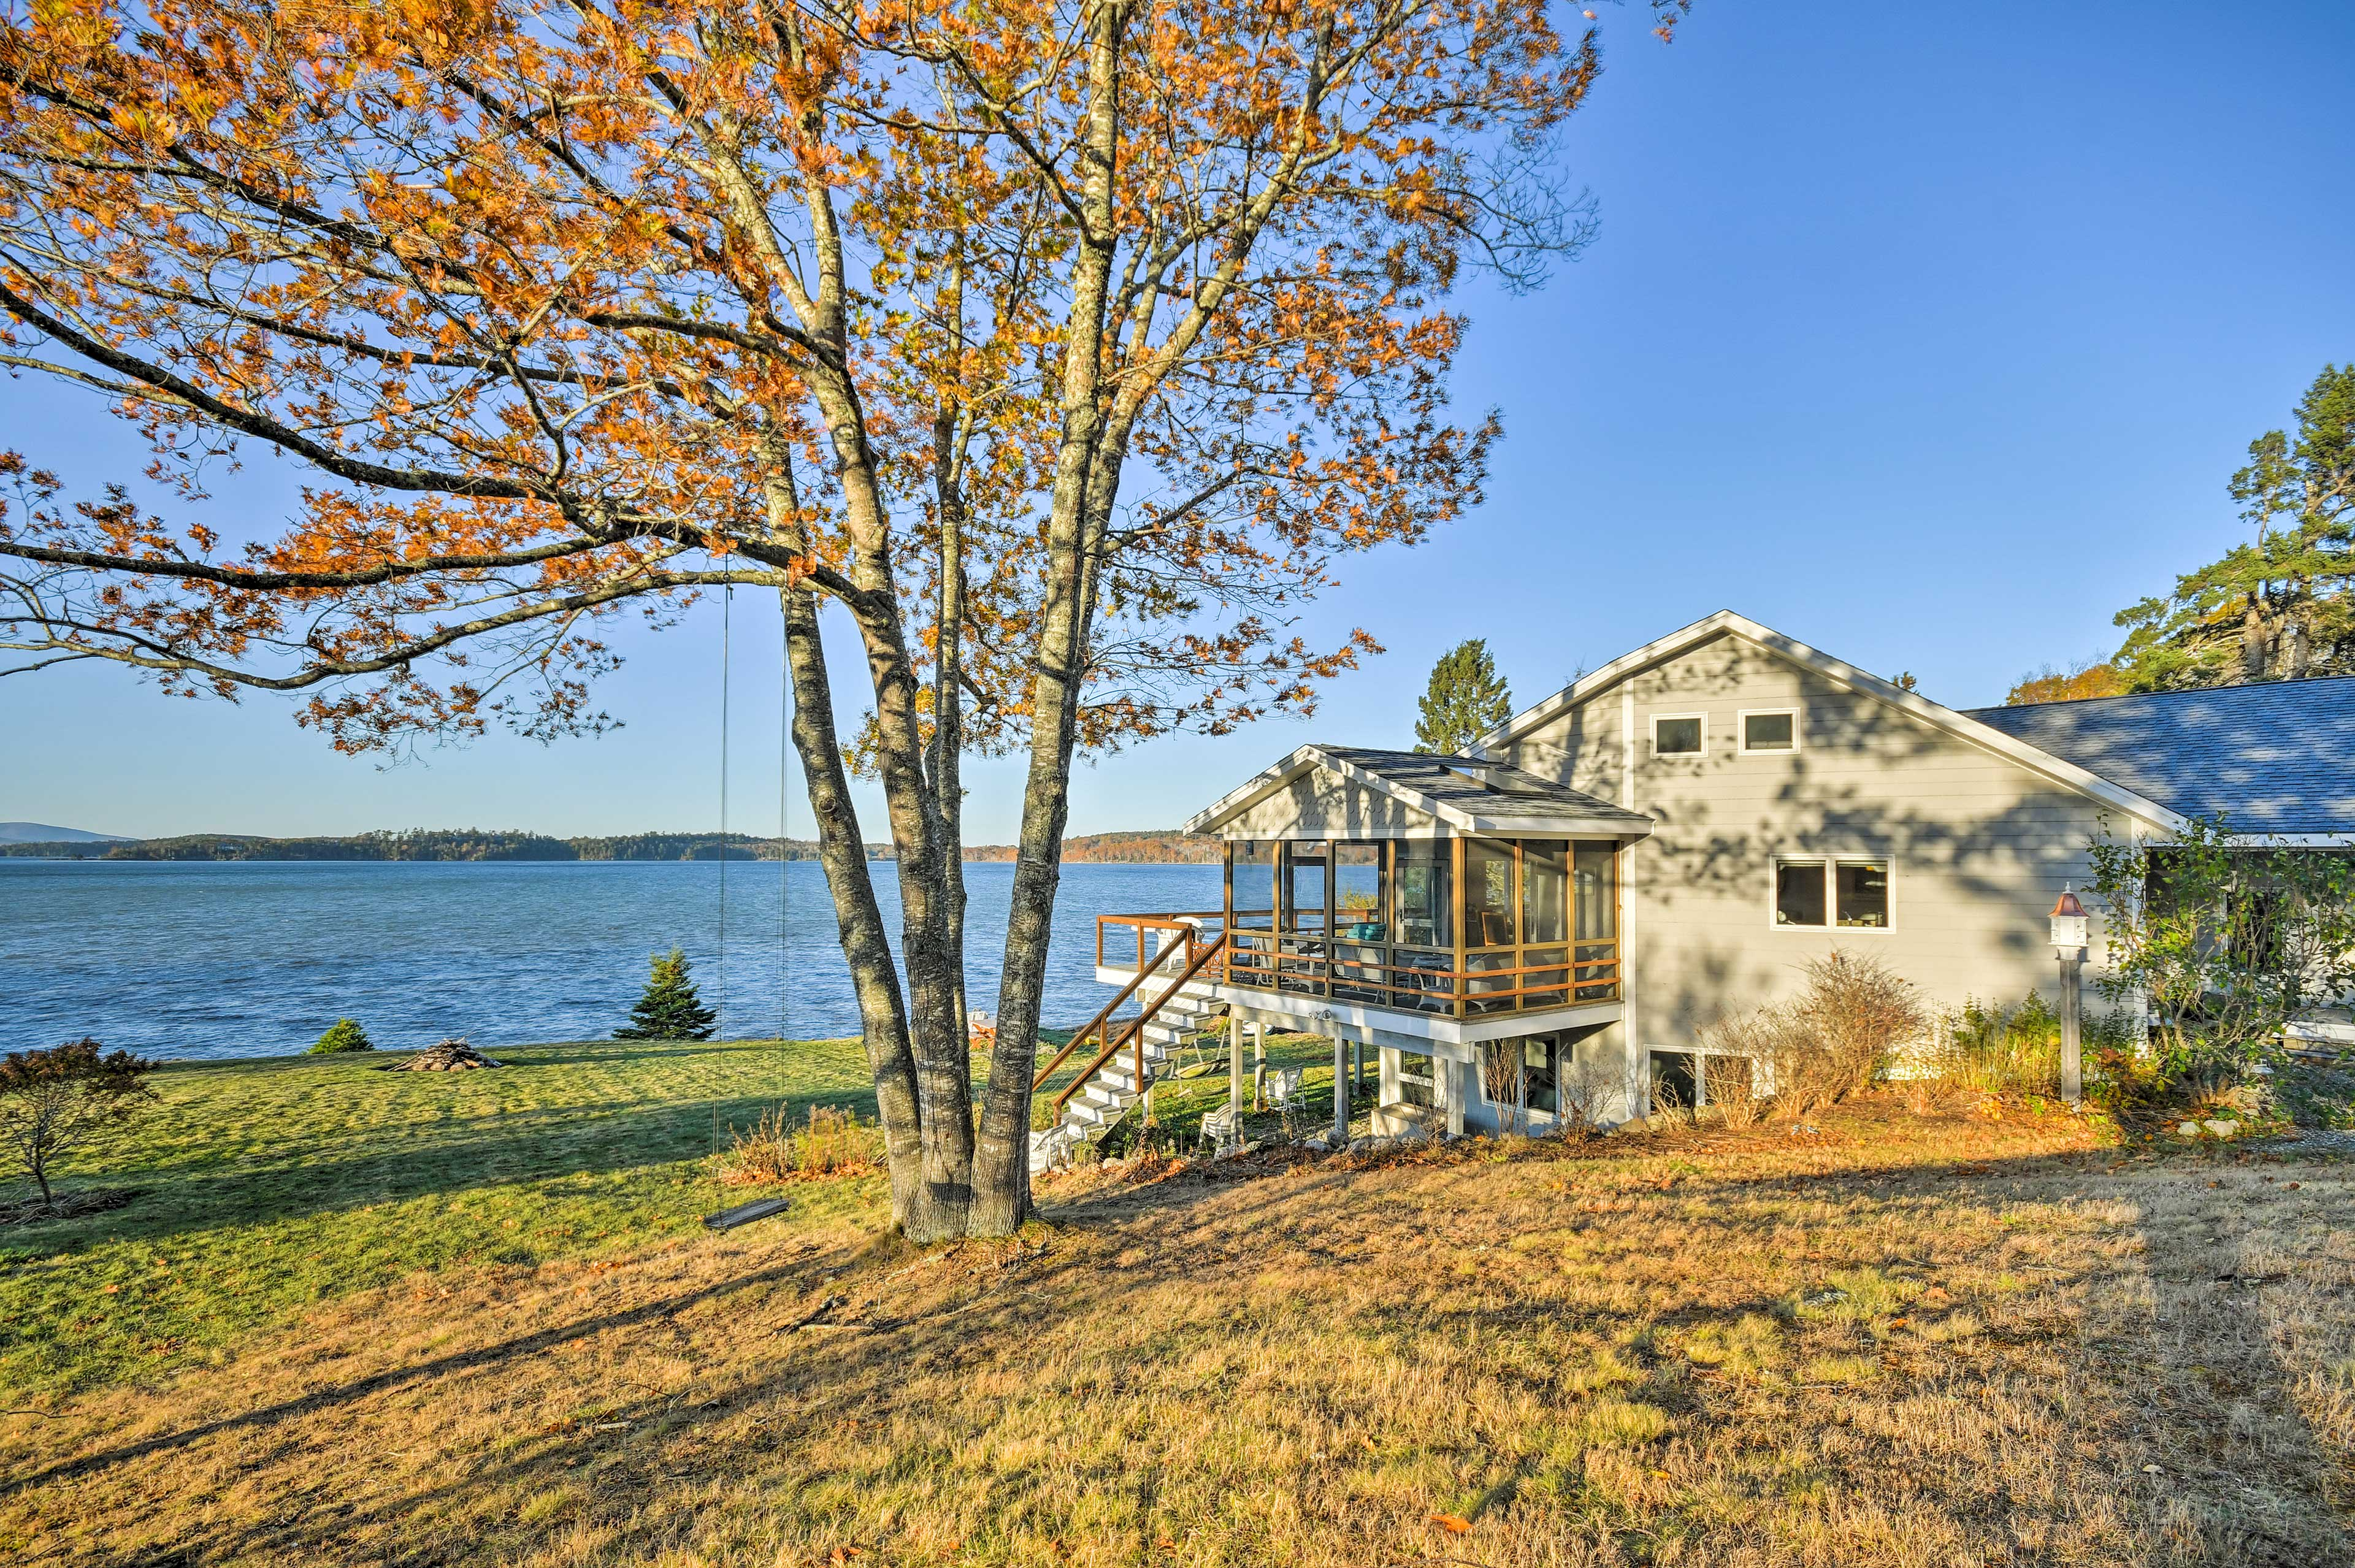 Enjoy an oceanfront escape at this vacation rental house on the Sullivan Coast!